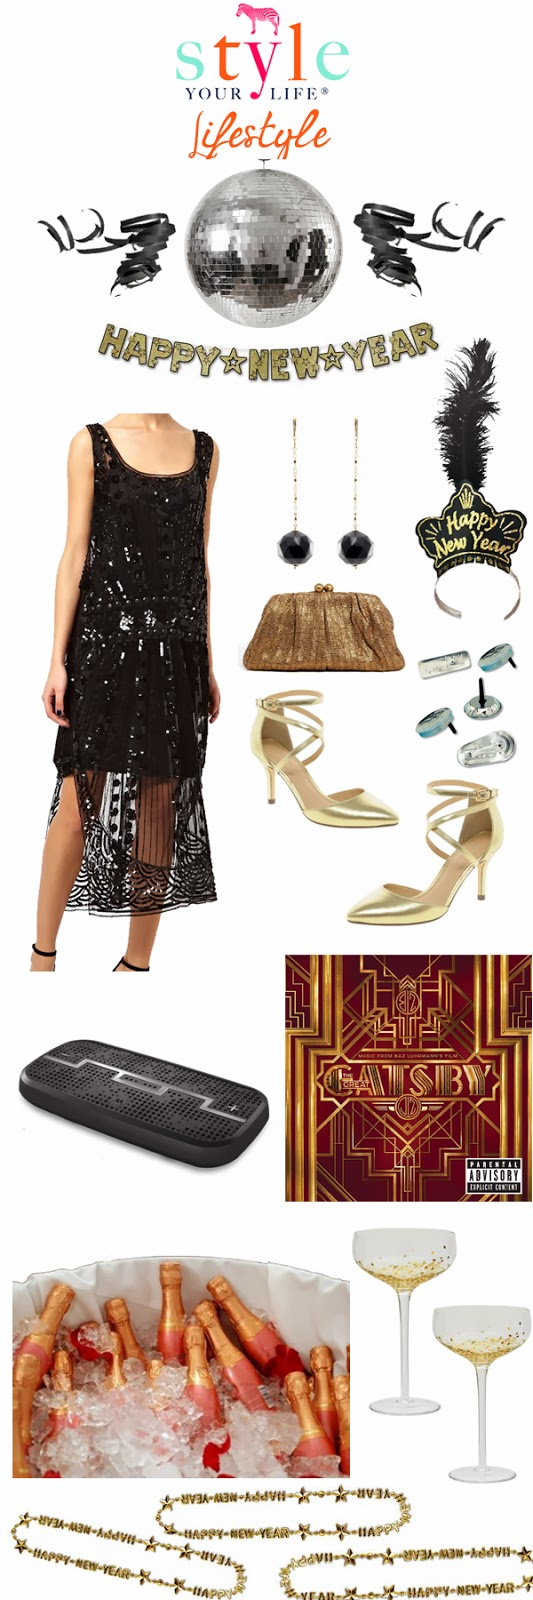 New Years Eve Great Gatsby Style